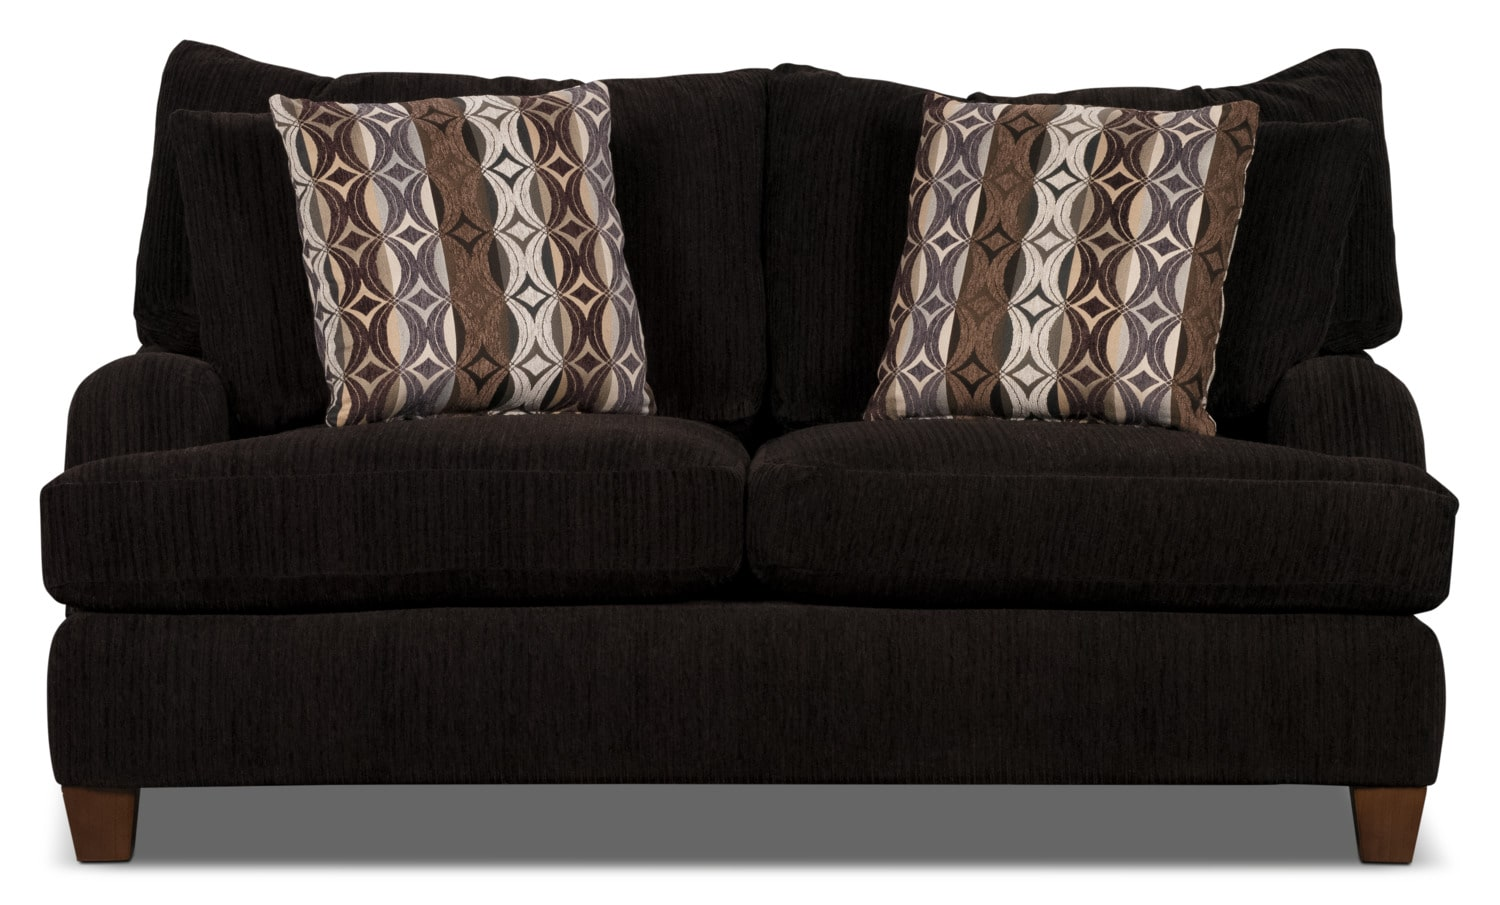 Putty Chenille Queen Size Sofa Bed Chocolate The Brick